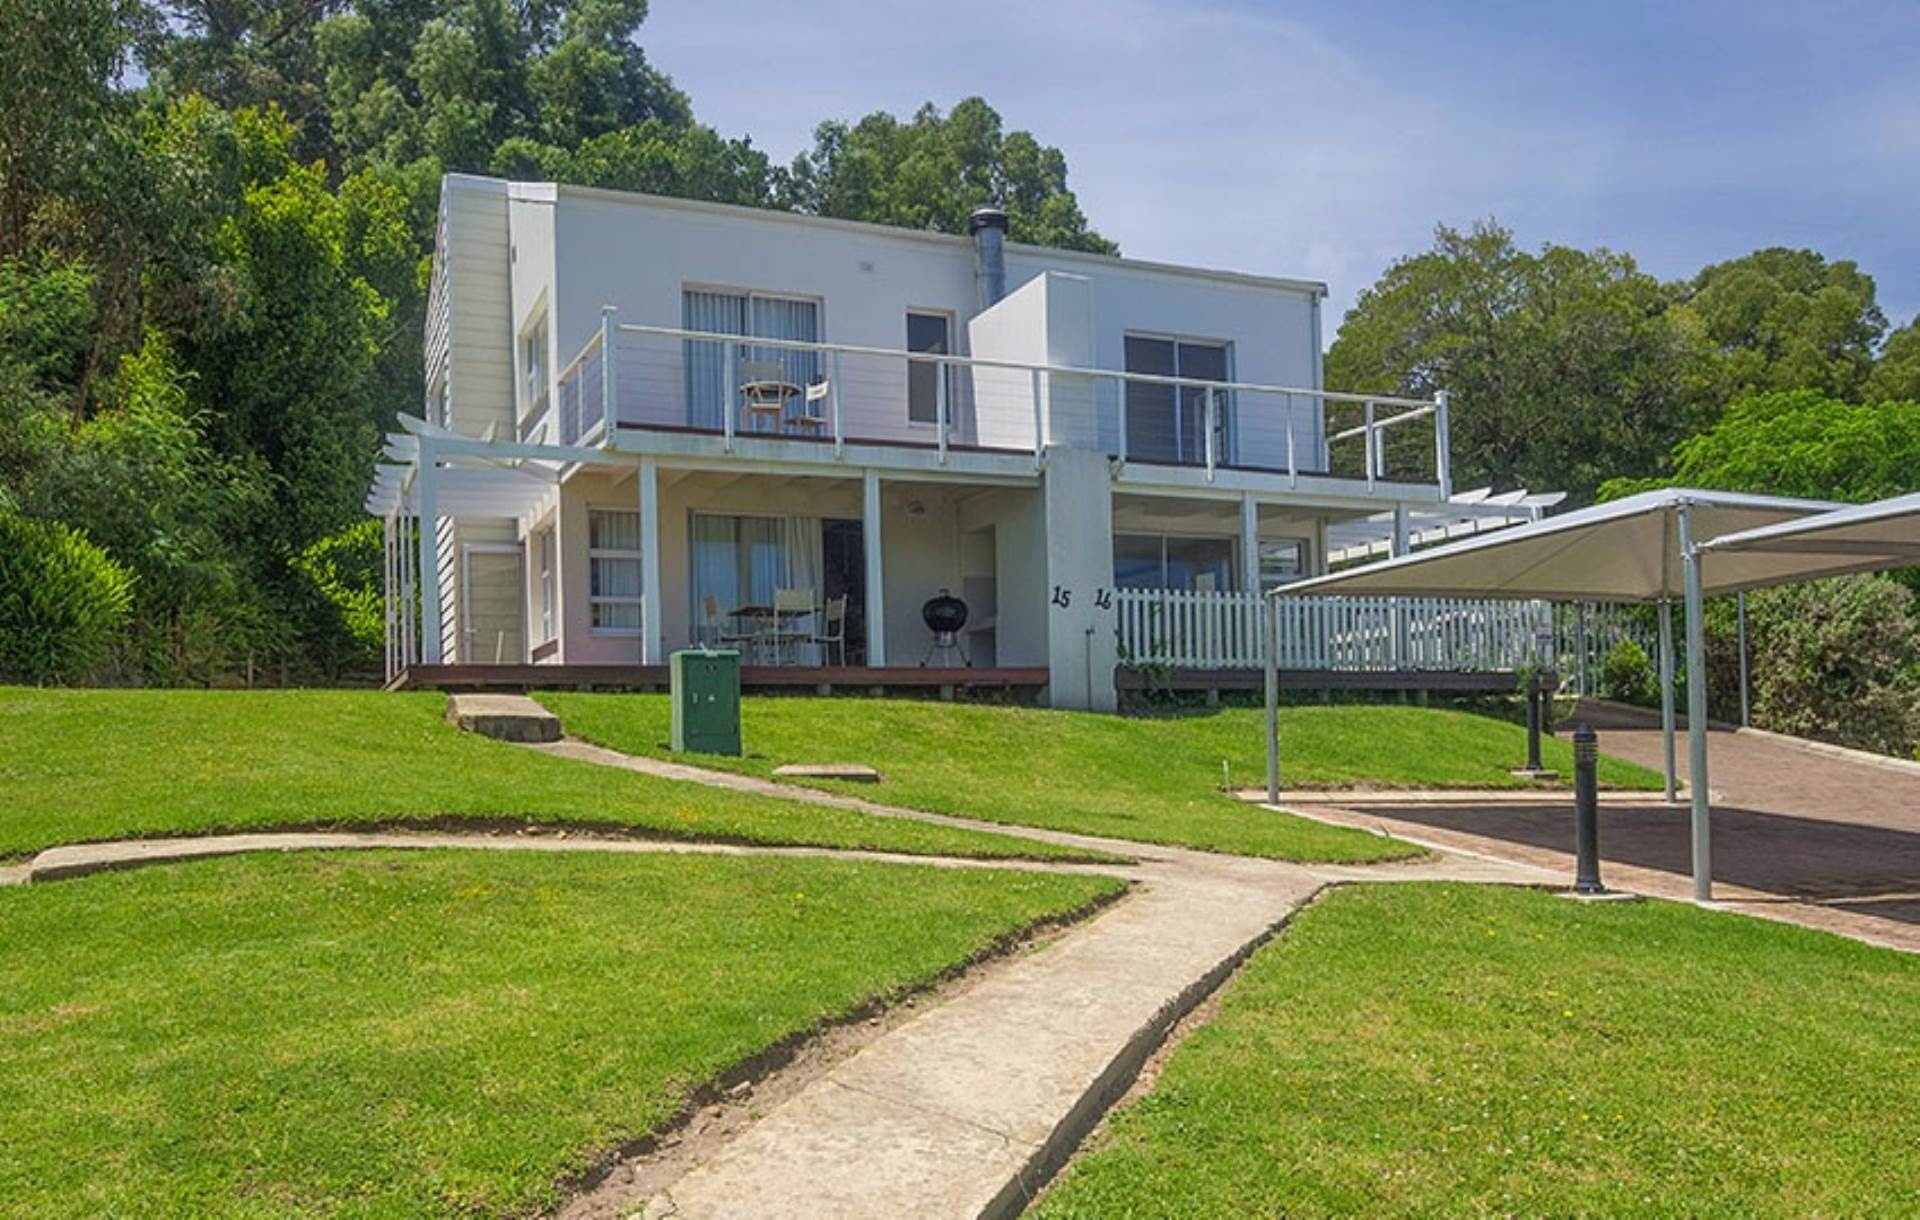 2 BedroomTownhouse For Sale In Knysna Central